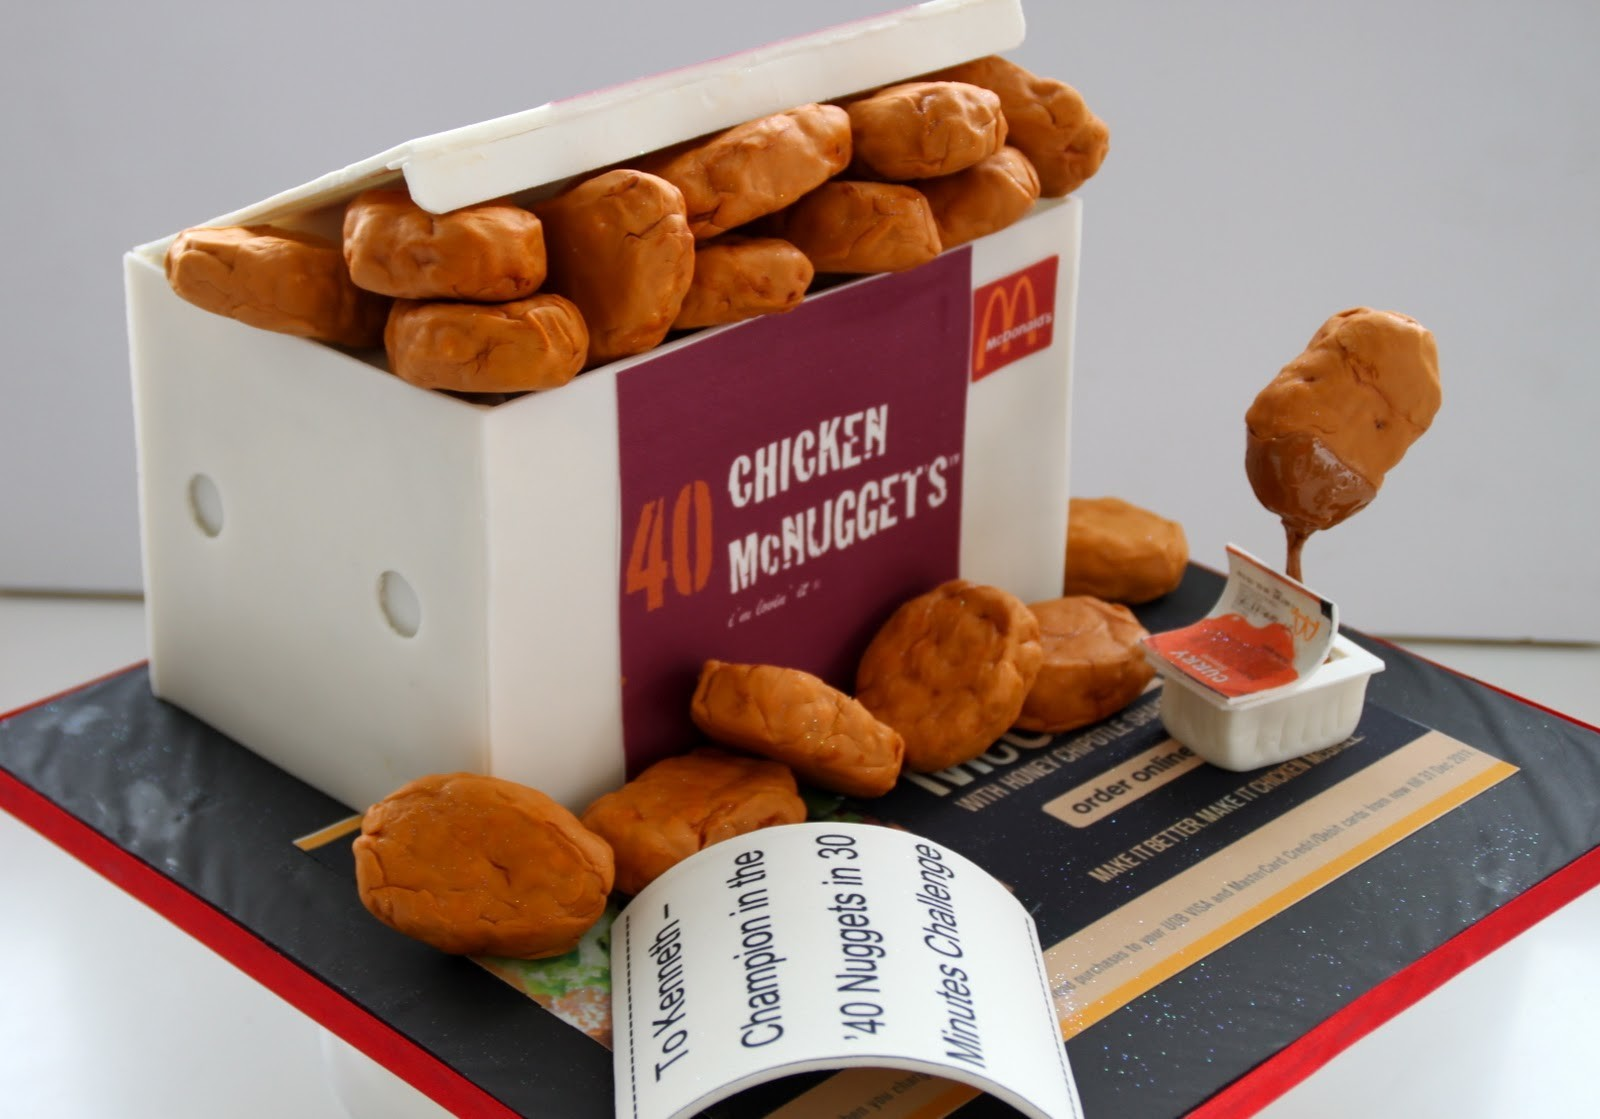 Mcdonald S Delivers Hot Deal On 40 Piece Chicken Mcnuggets On Super Bowl Sunday South Florida Sun Sentinel South Florida Sun Sentinel